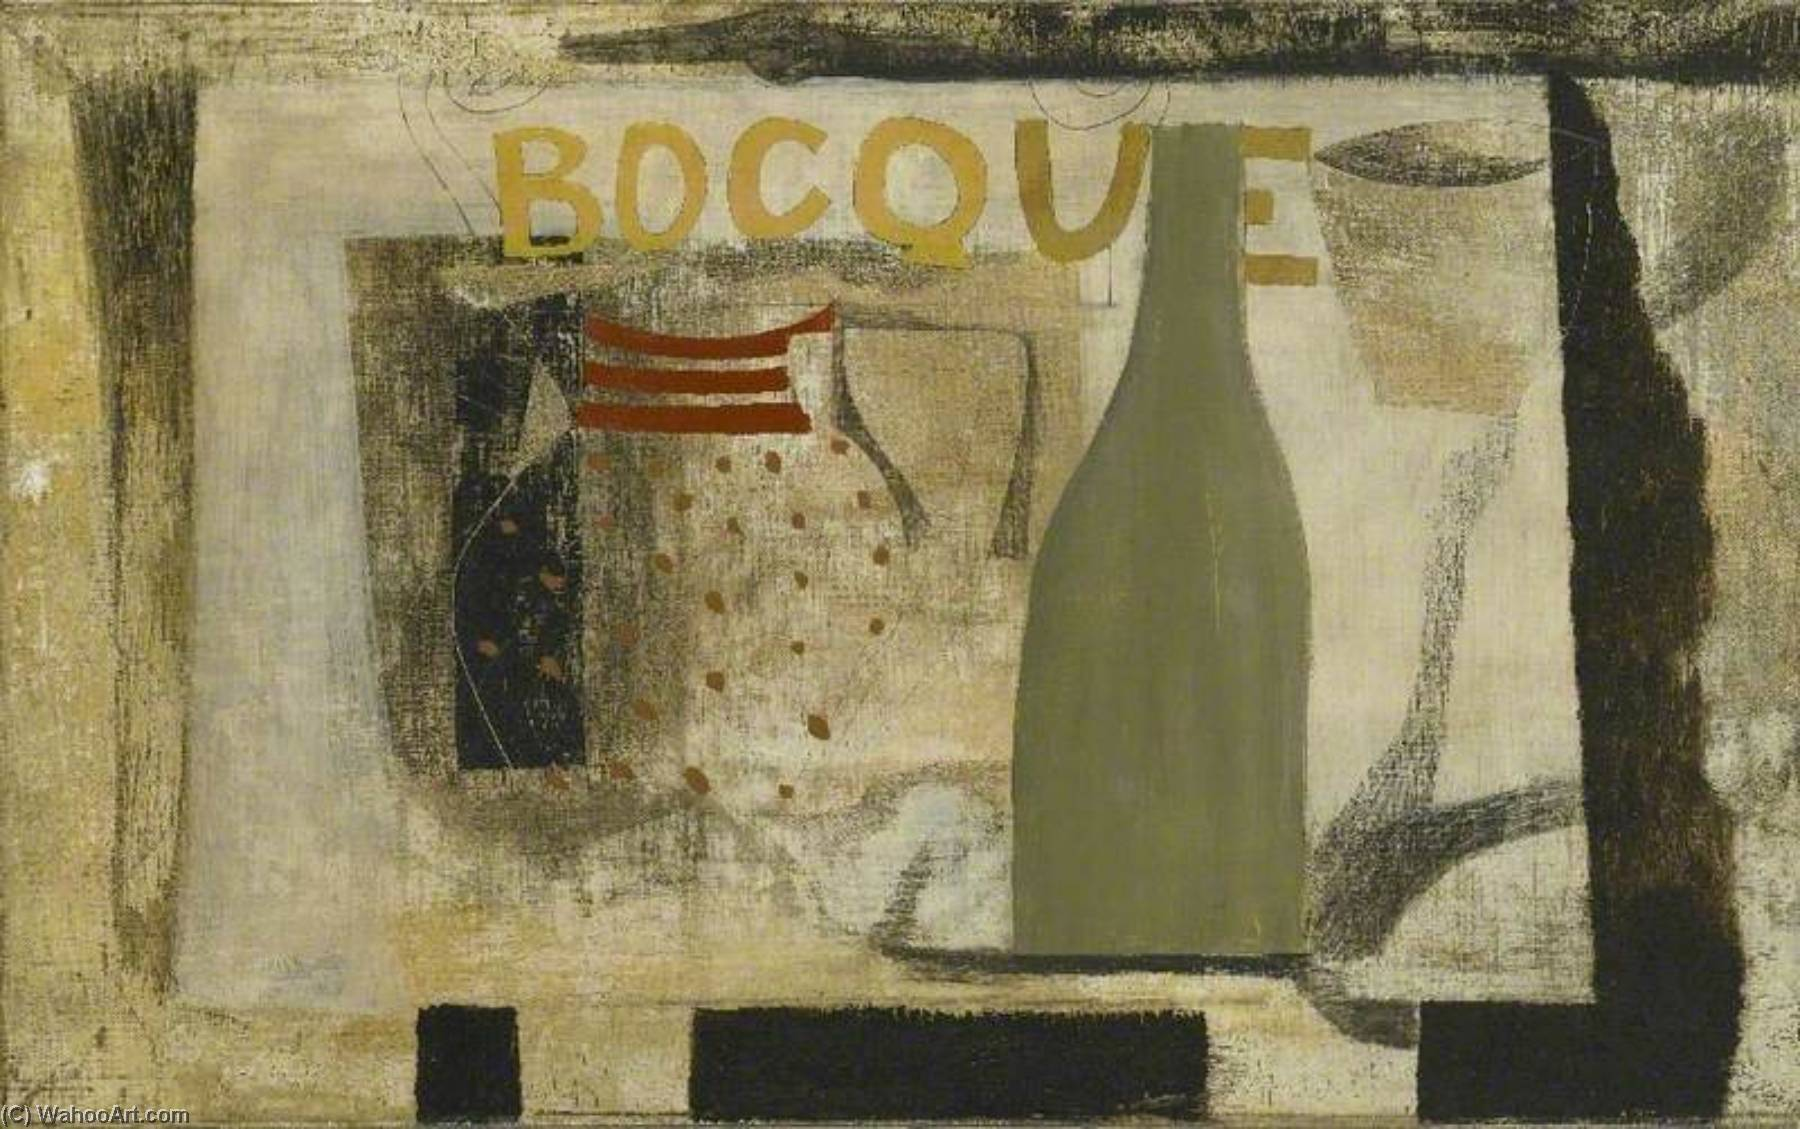 1932 (Bocque), 1932 by Ben Nicholson (1894-1982, United Kingdom) |  | WahooArt.com